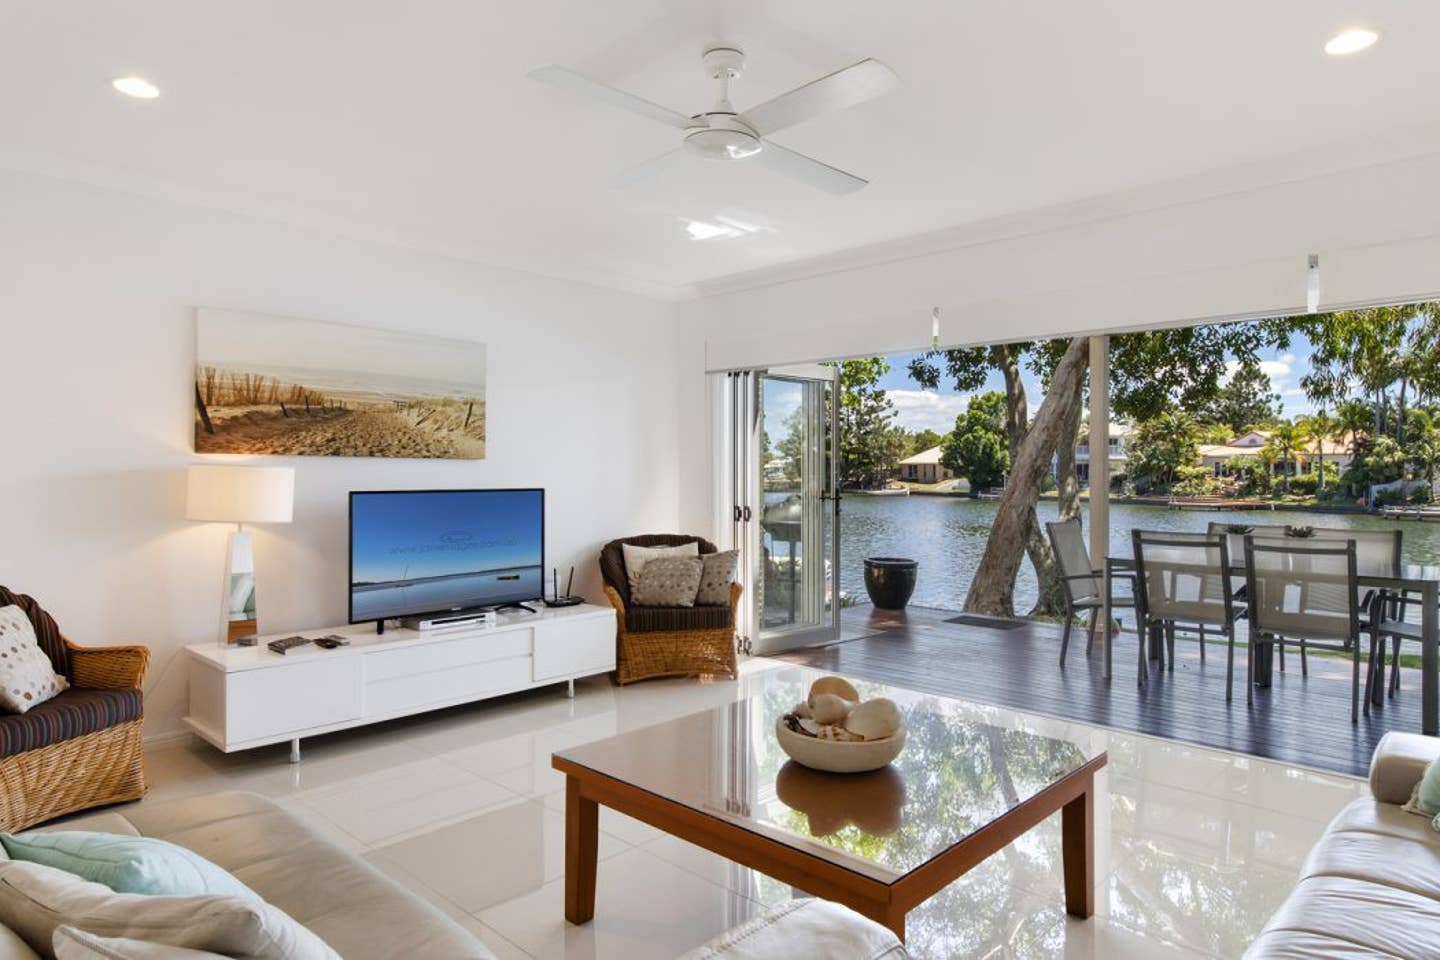 A stylish house in Noosa waters